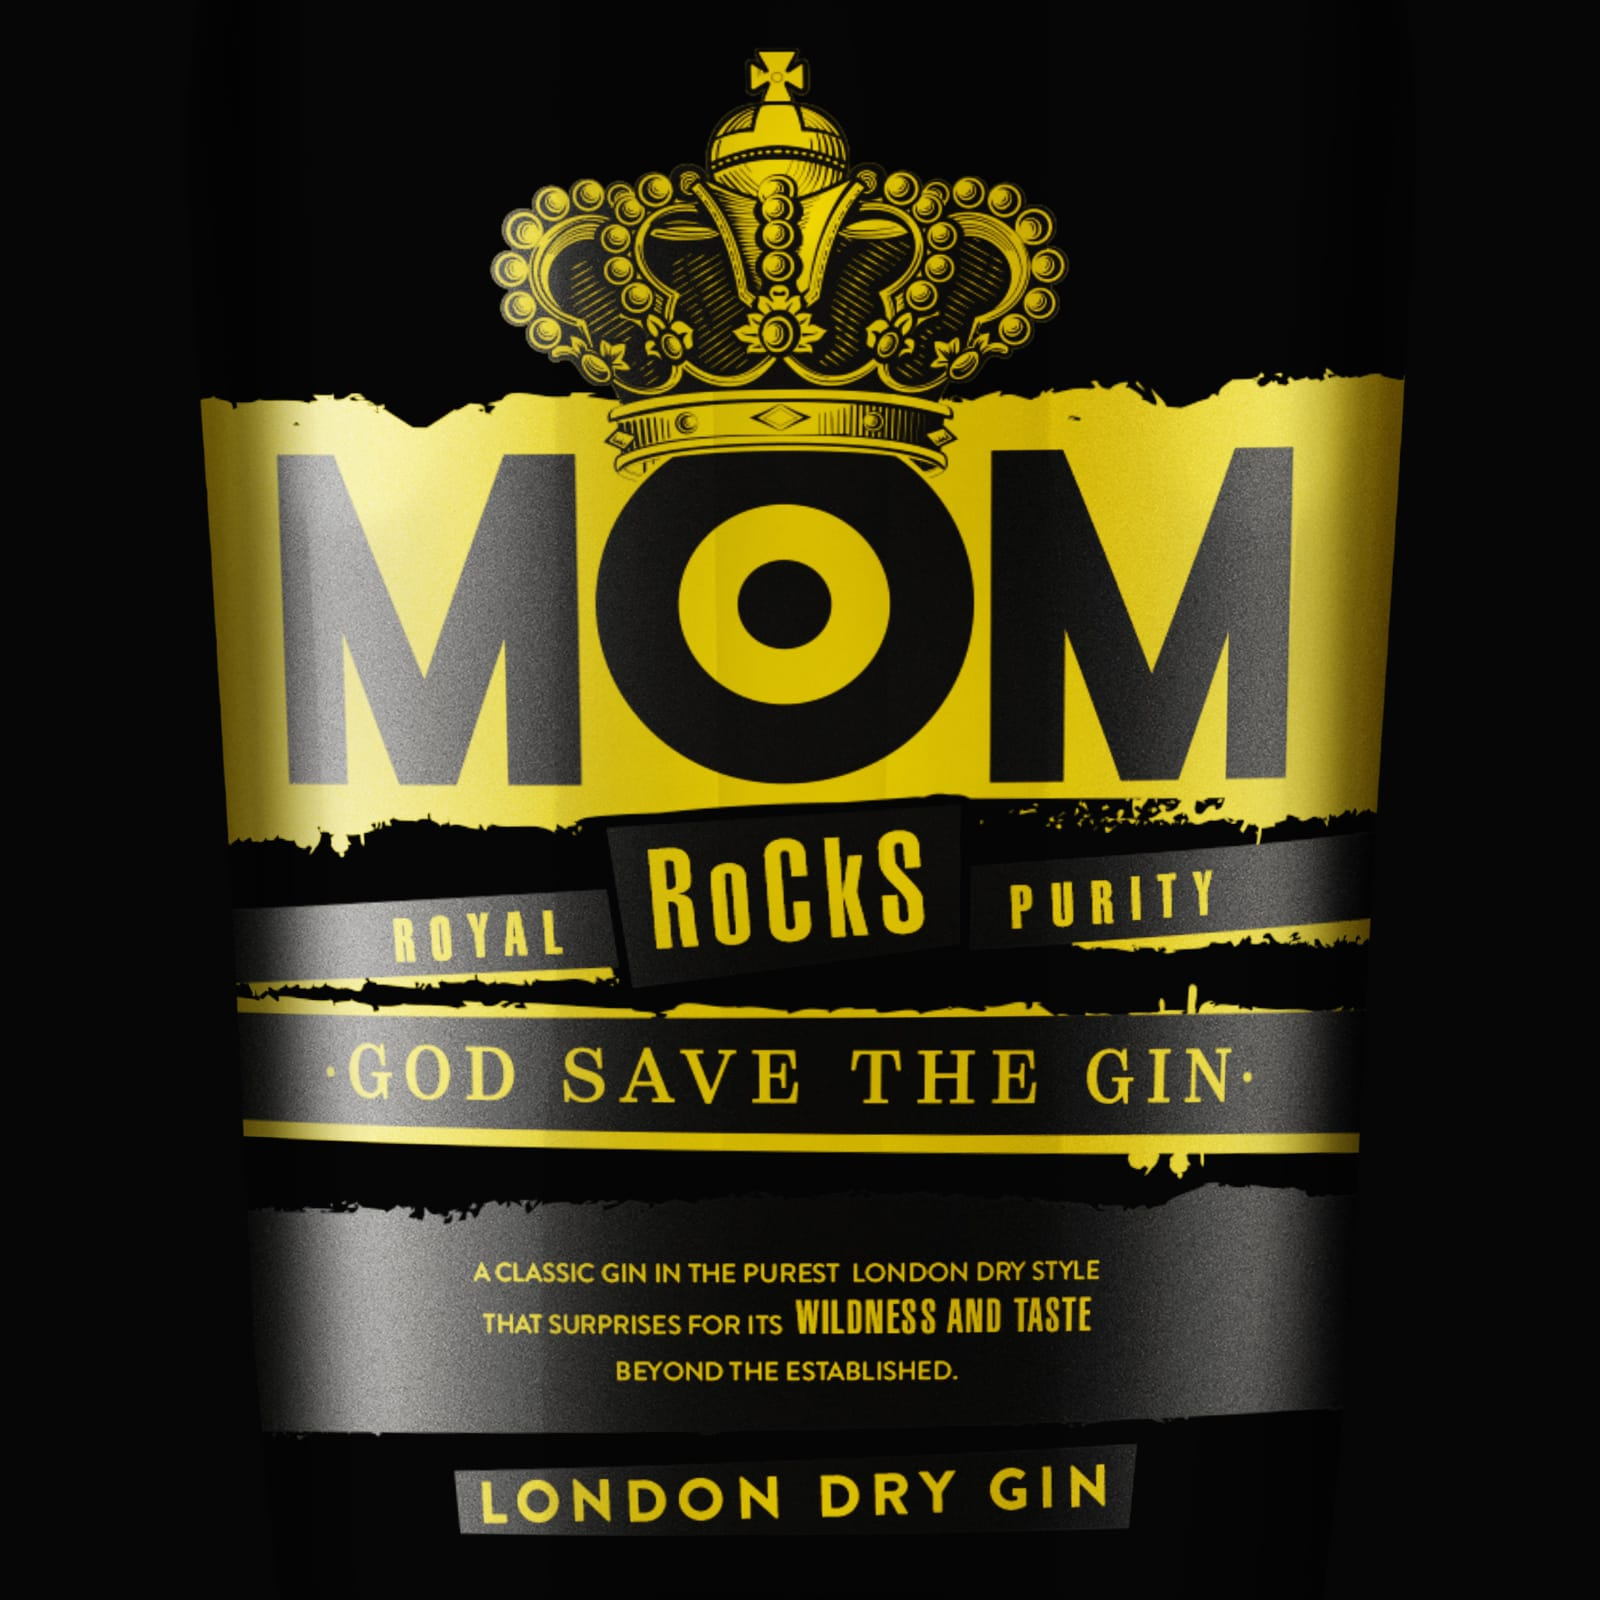 Epica Creates Unique Design Inspired in Punk Culture for a London Dry Gin